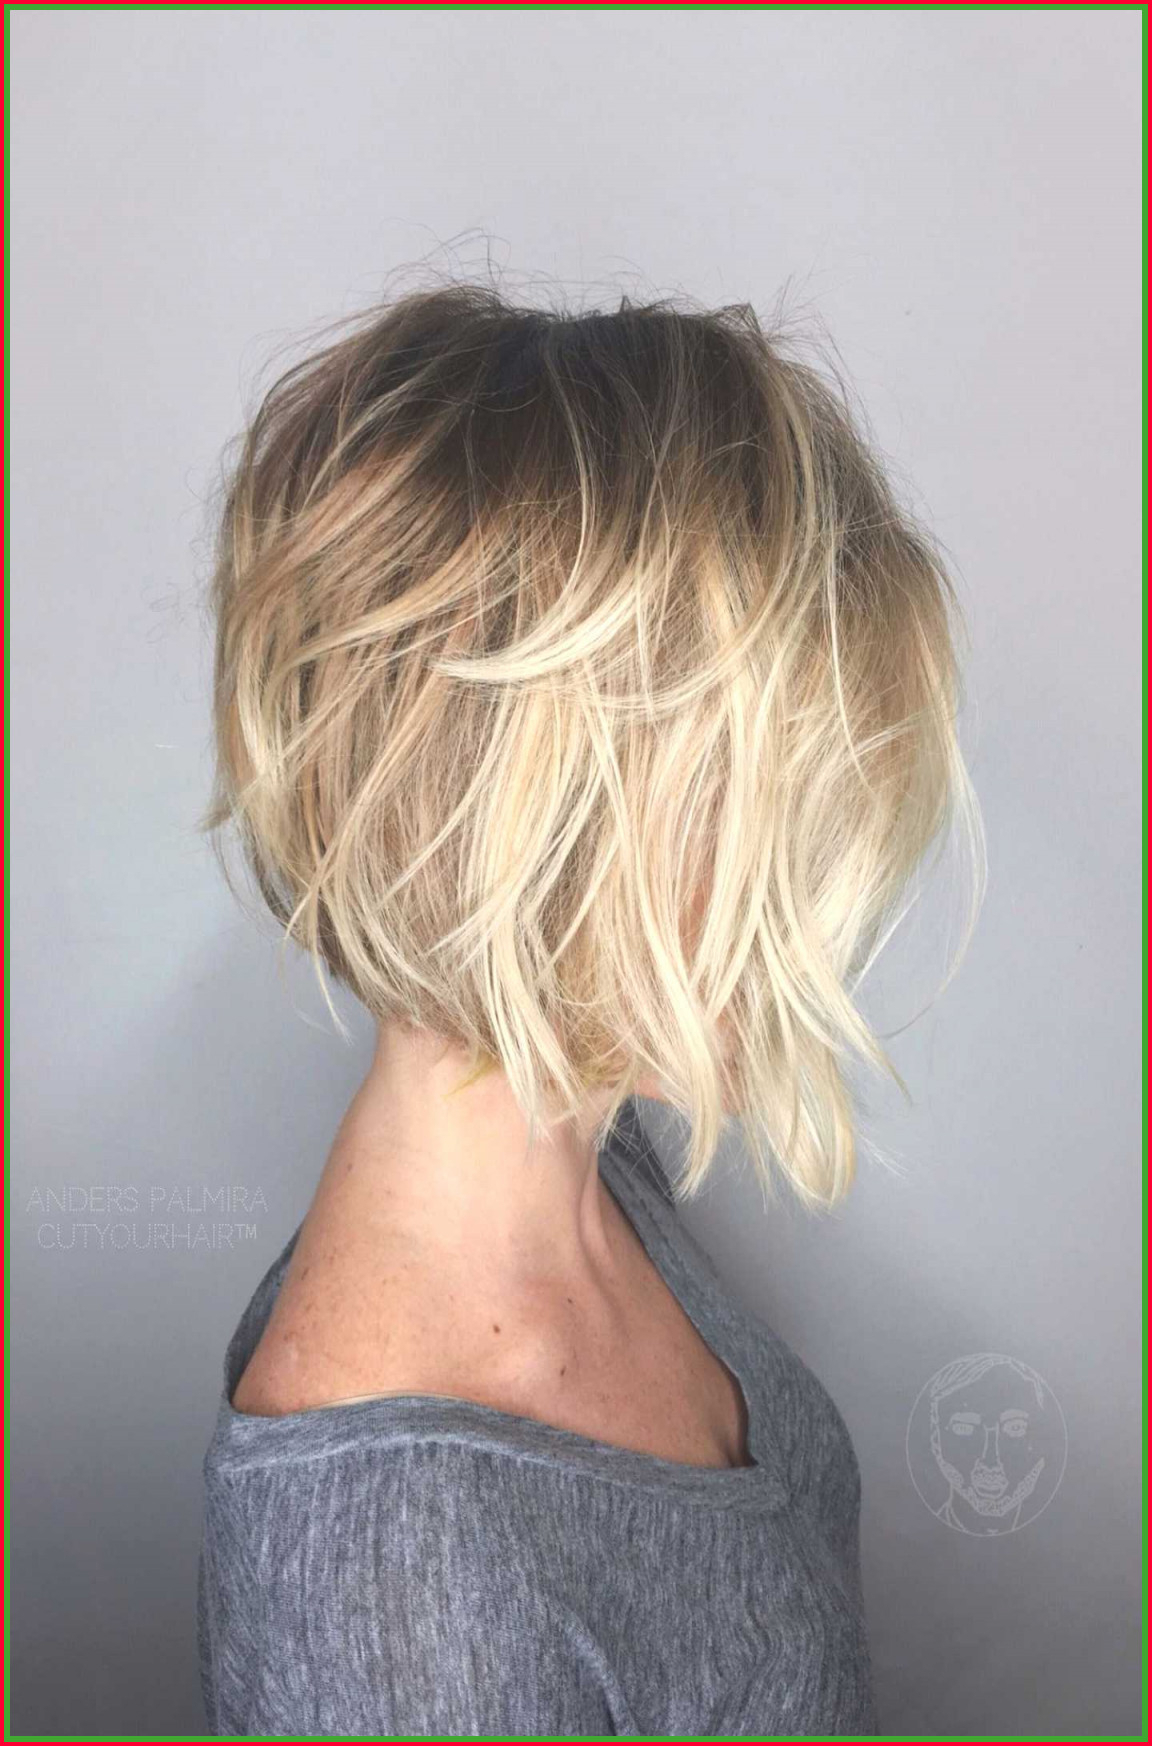 Haircuts For Brunettes 24522 Best 20 Short Shag Haircuts Inside Short Shaggy Brunette Bob Hairstyles (View 17 of 20)